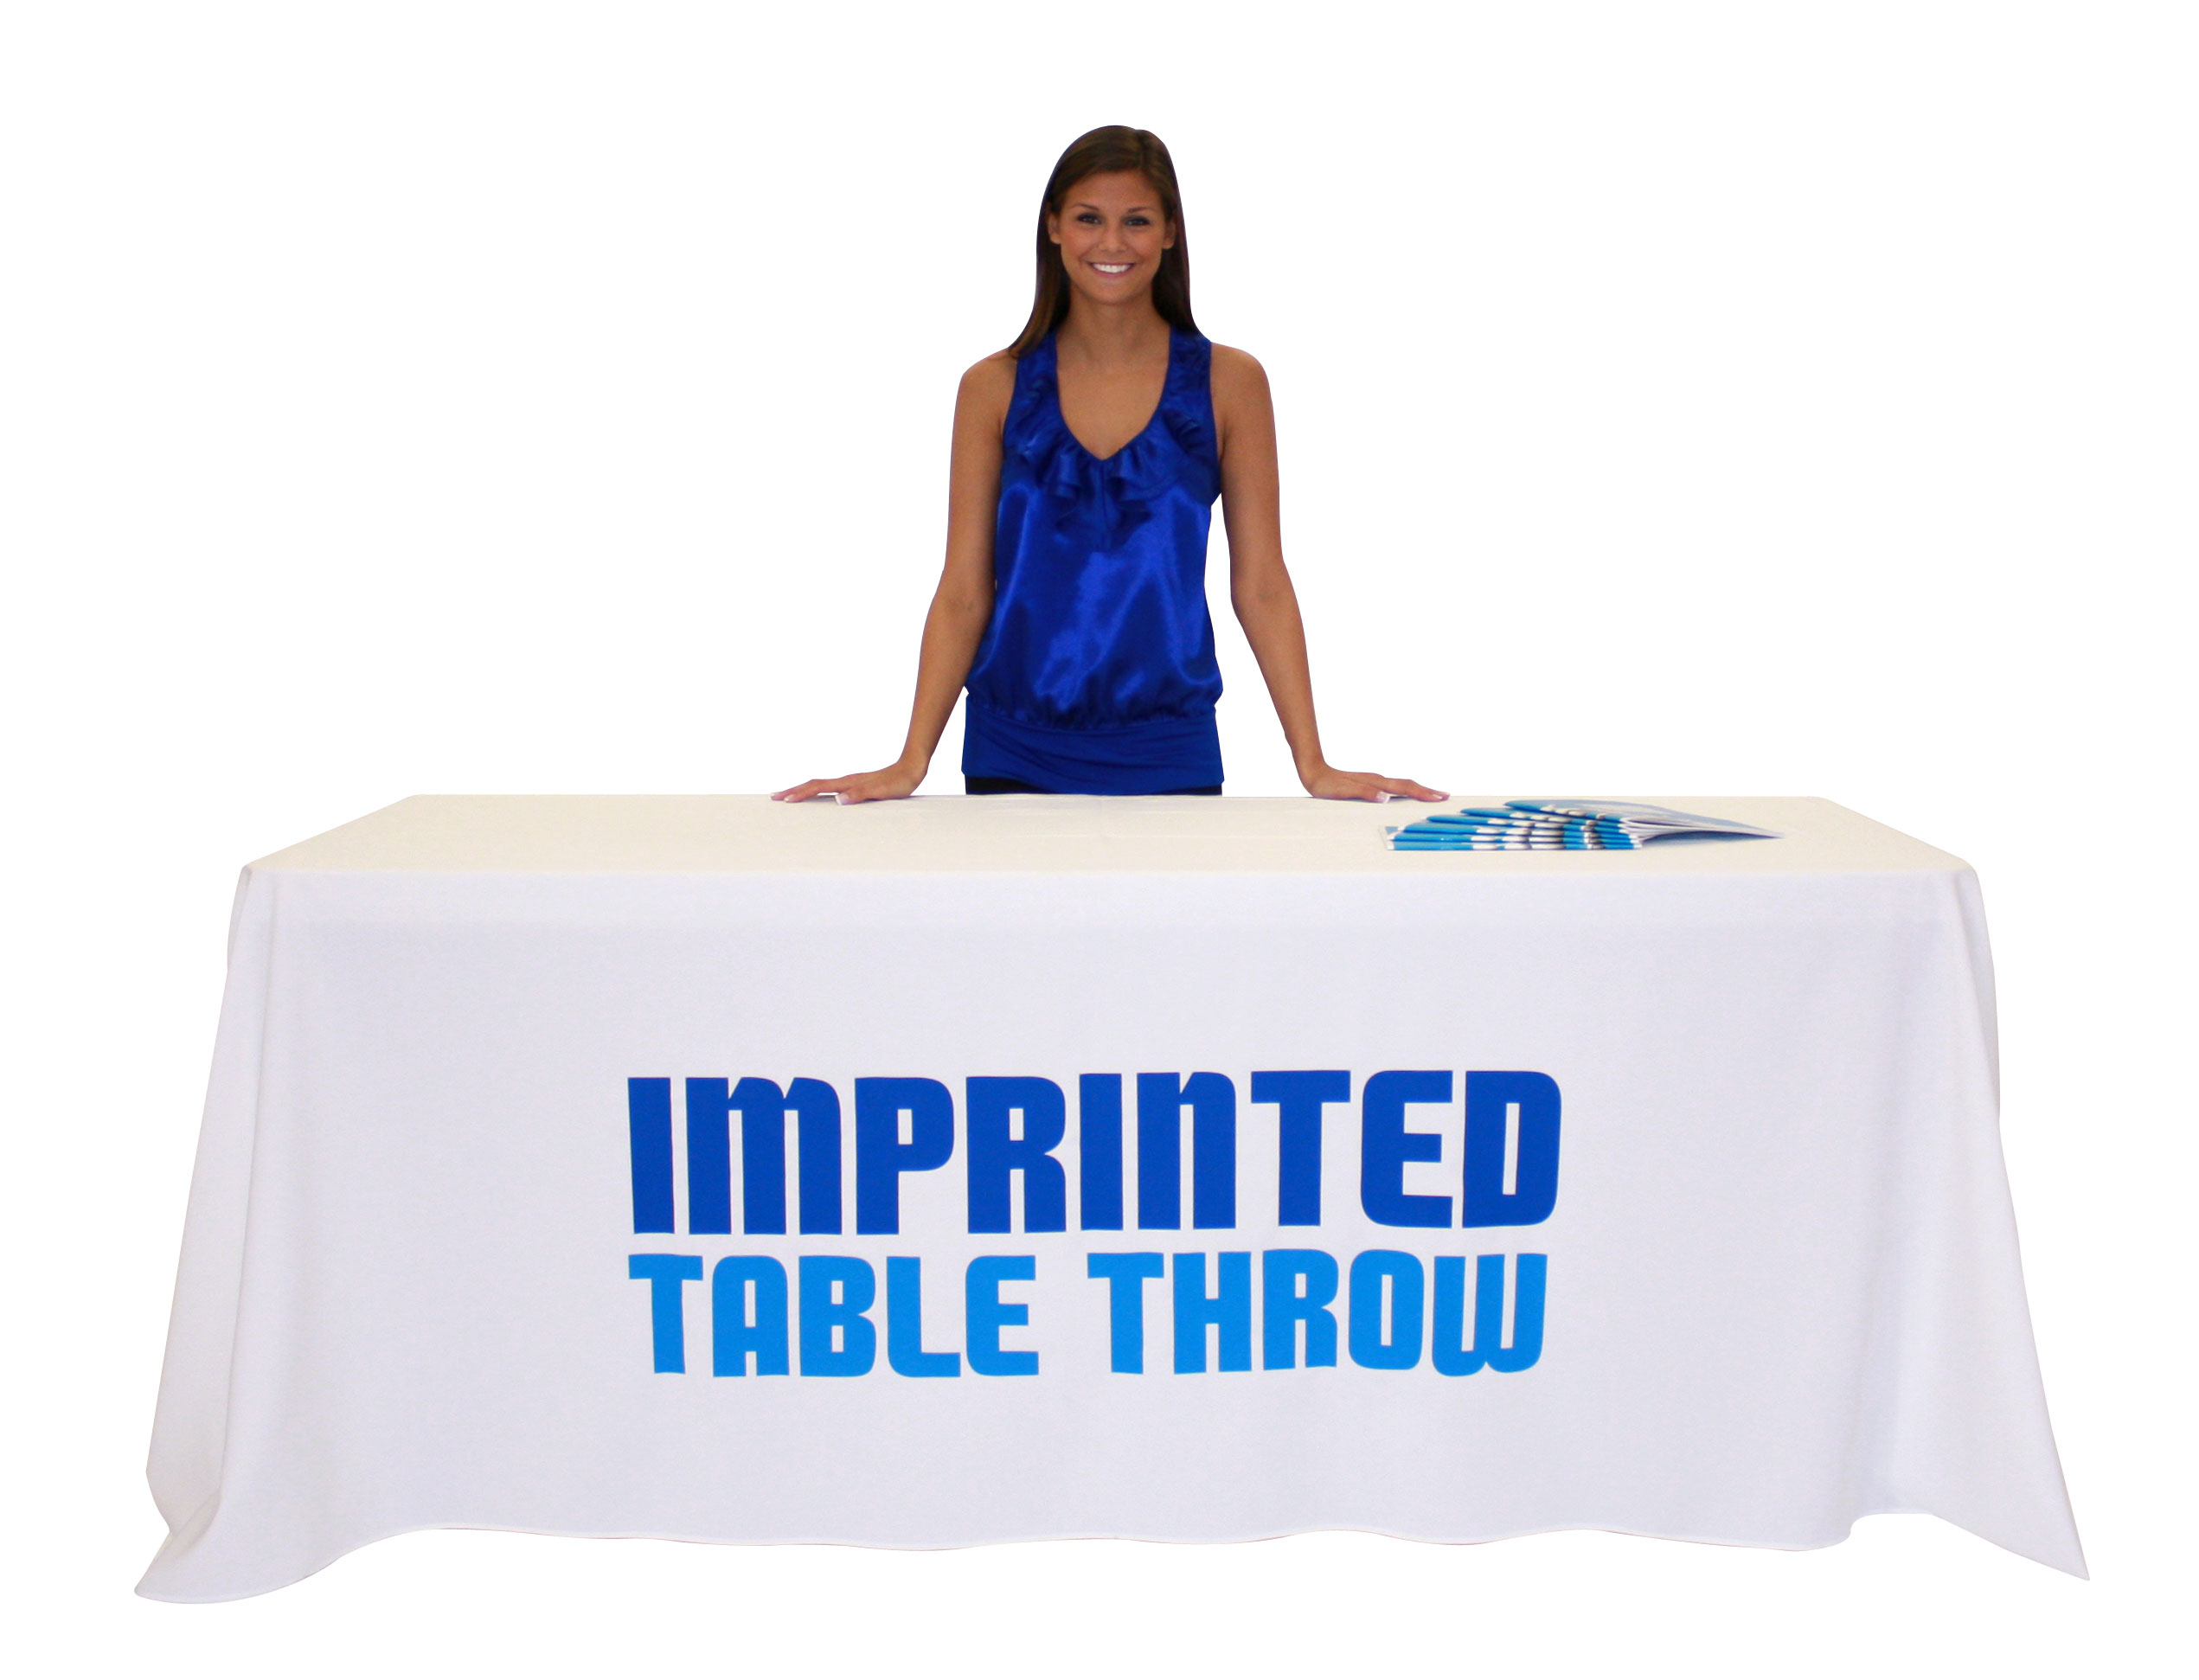 Table throws step one signs for Table th row group